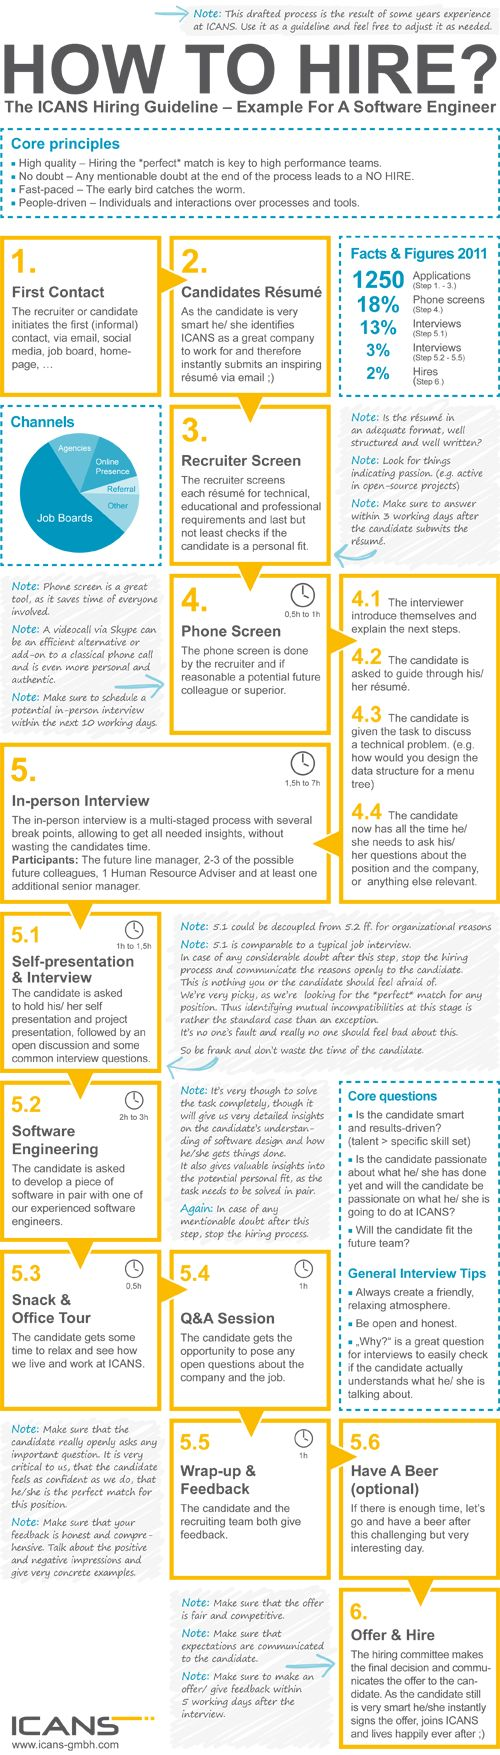 Hiring Guideline ICANS - How to hire #infographics #hr